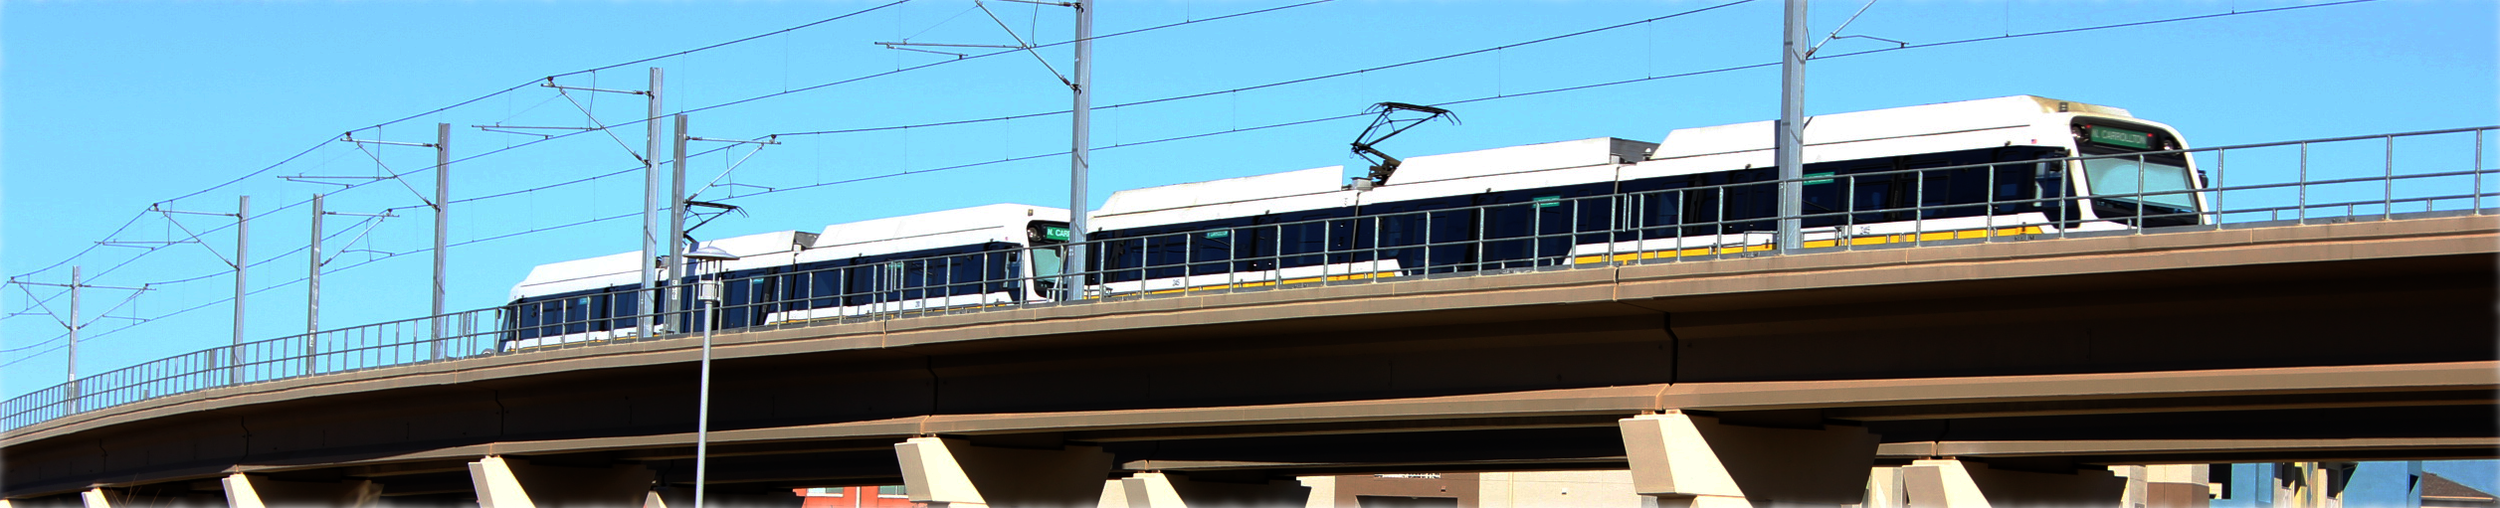 Ground-Borne Vibration from Light Rail Transportation Systems